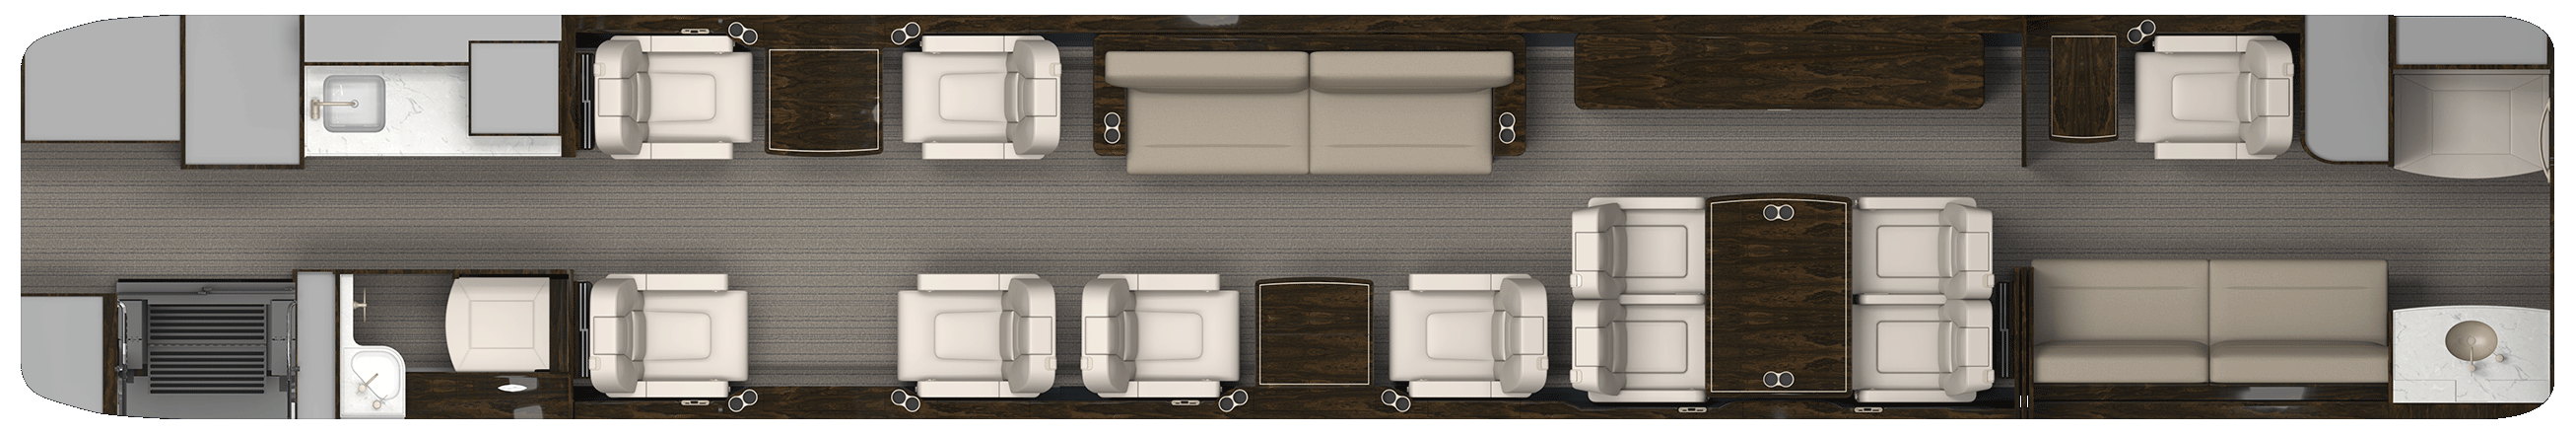 Forward Galley